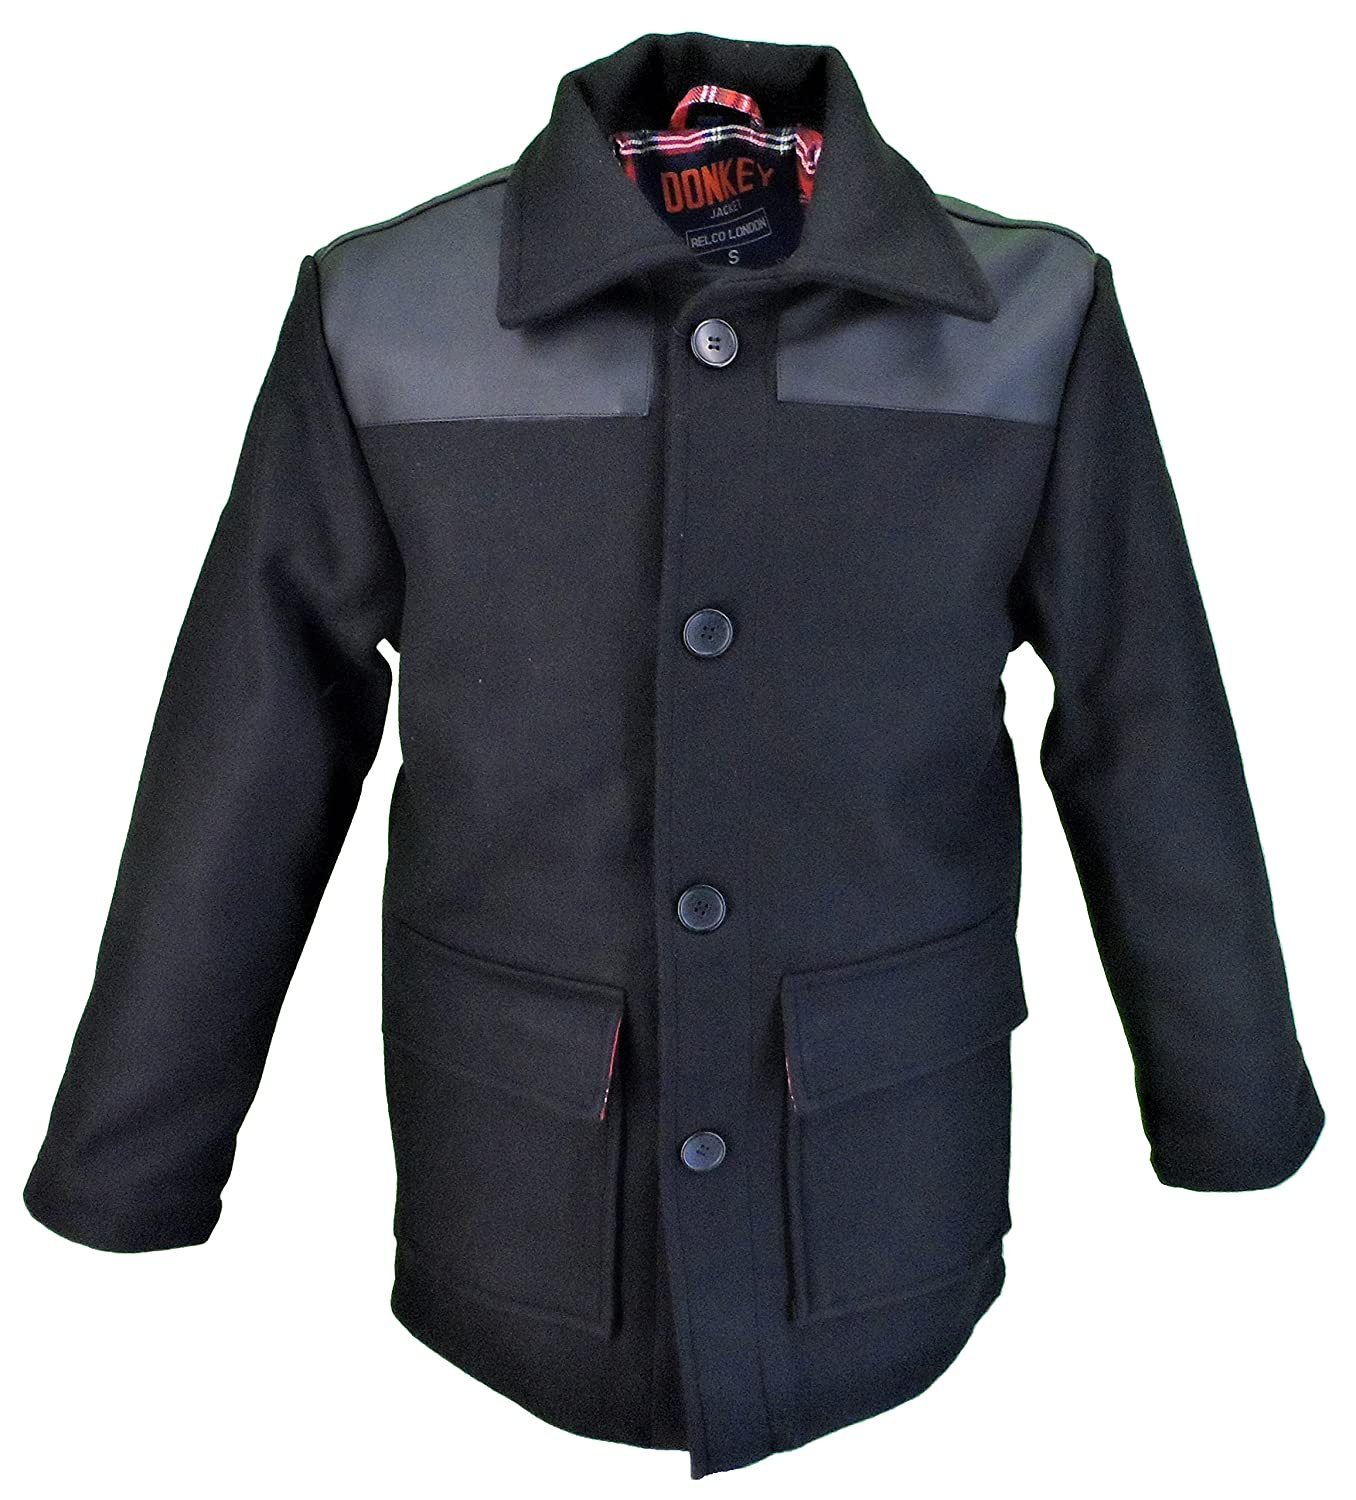 Vintage Inspired Dresses & Clothing UK Relco Mens Retro Donkey Jacket £84.99 AT vintagedancer.com